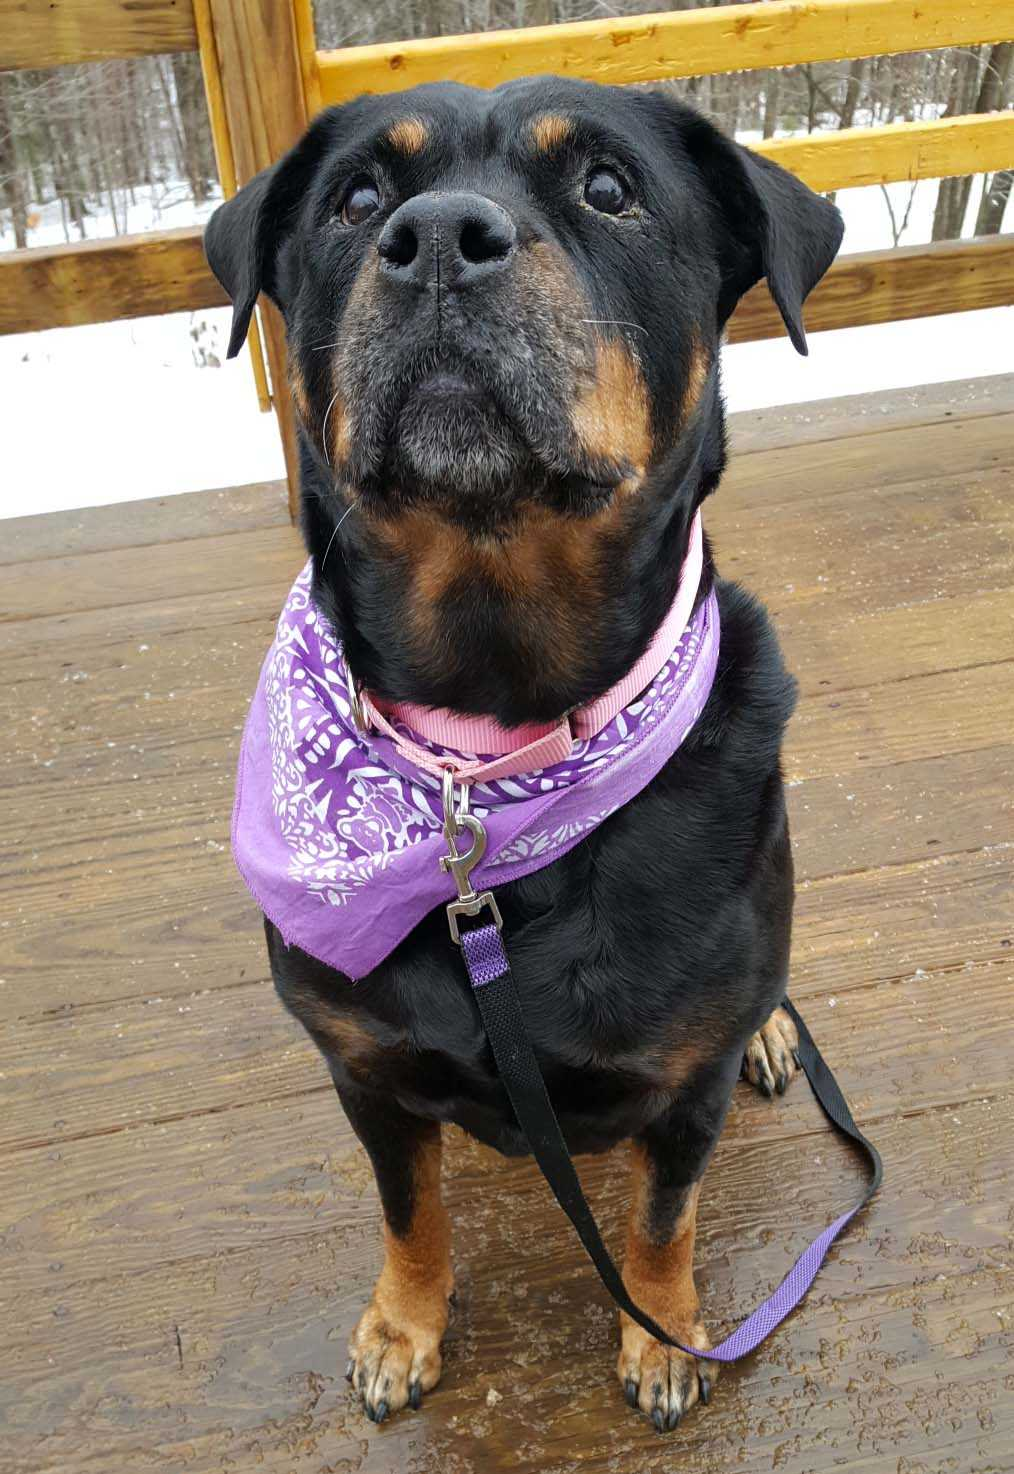 Abby is an adoptable dog at For the Love of Dog in the Keene area.